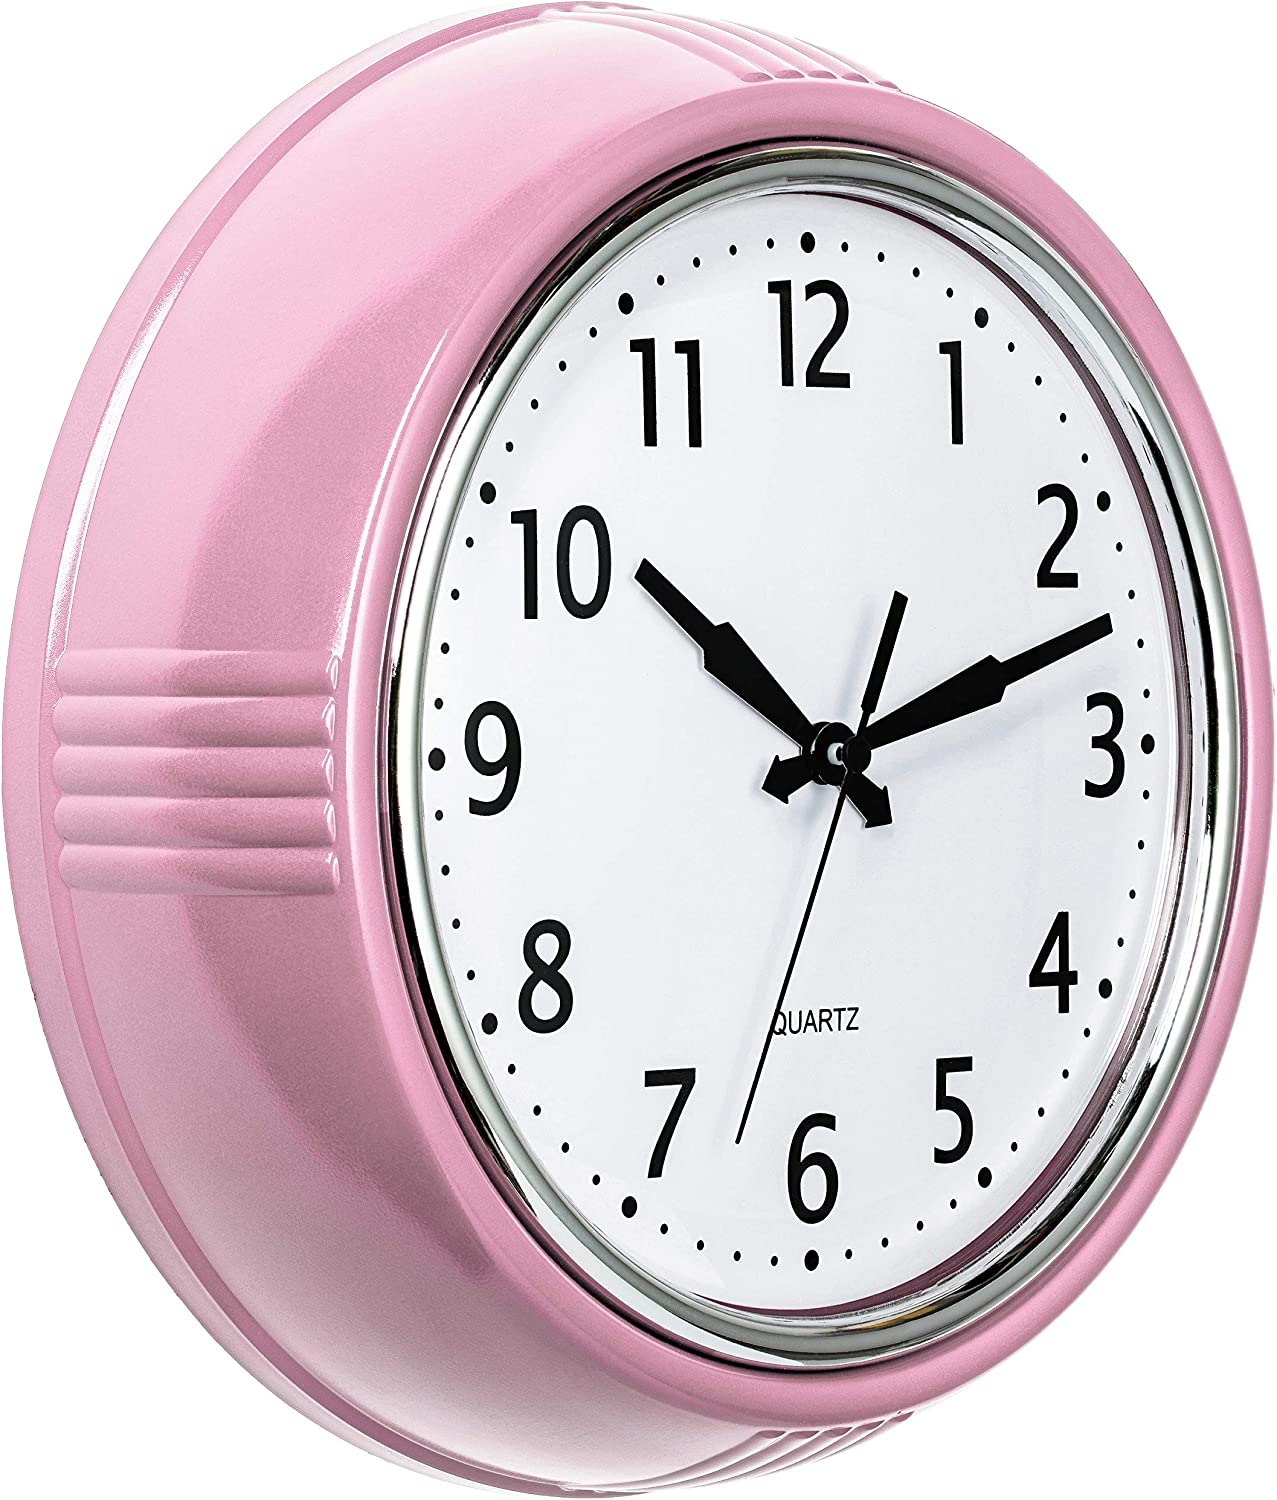 Bernhard Products Retro Wall Clock 9.5 Inch Pink Kitchen 50's Vintage Design Round Silent Non Ticking Battery Operated Quality Quartz for Home Office Baby Nursery Girls Room Classroom, Easy to Read